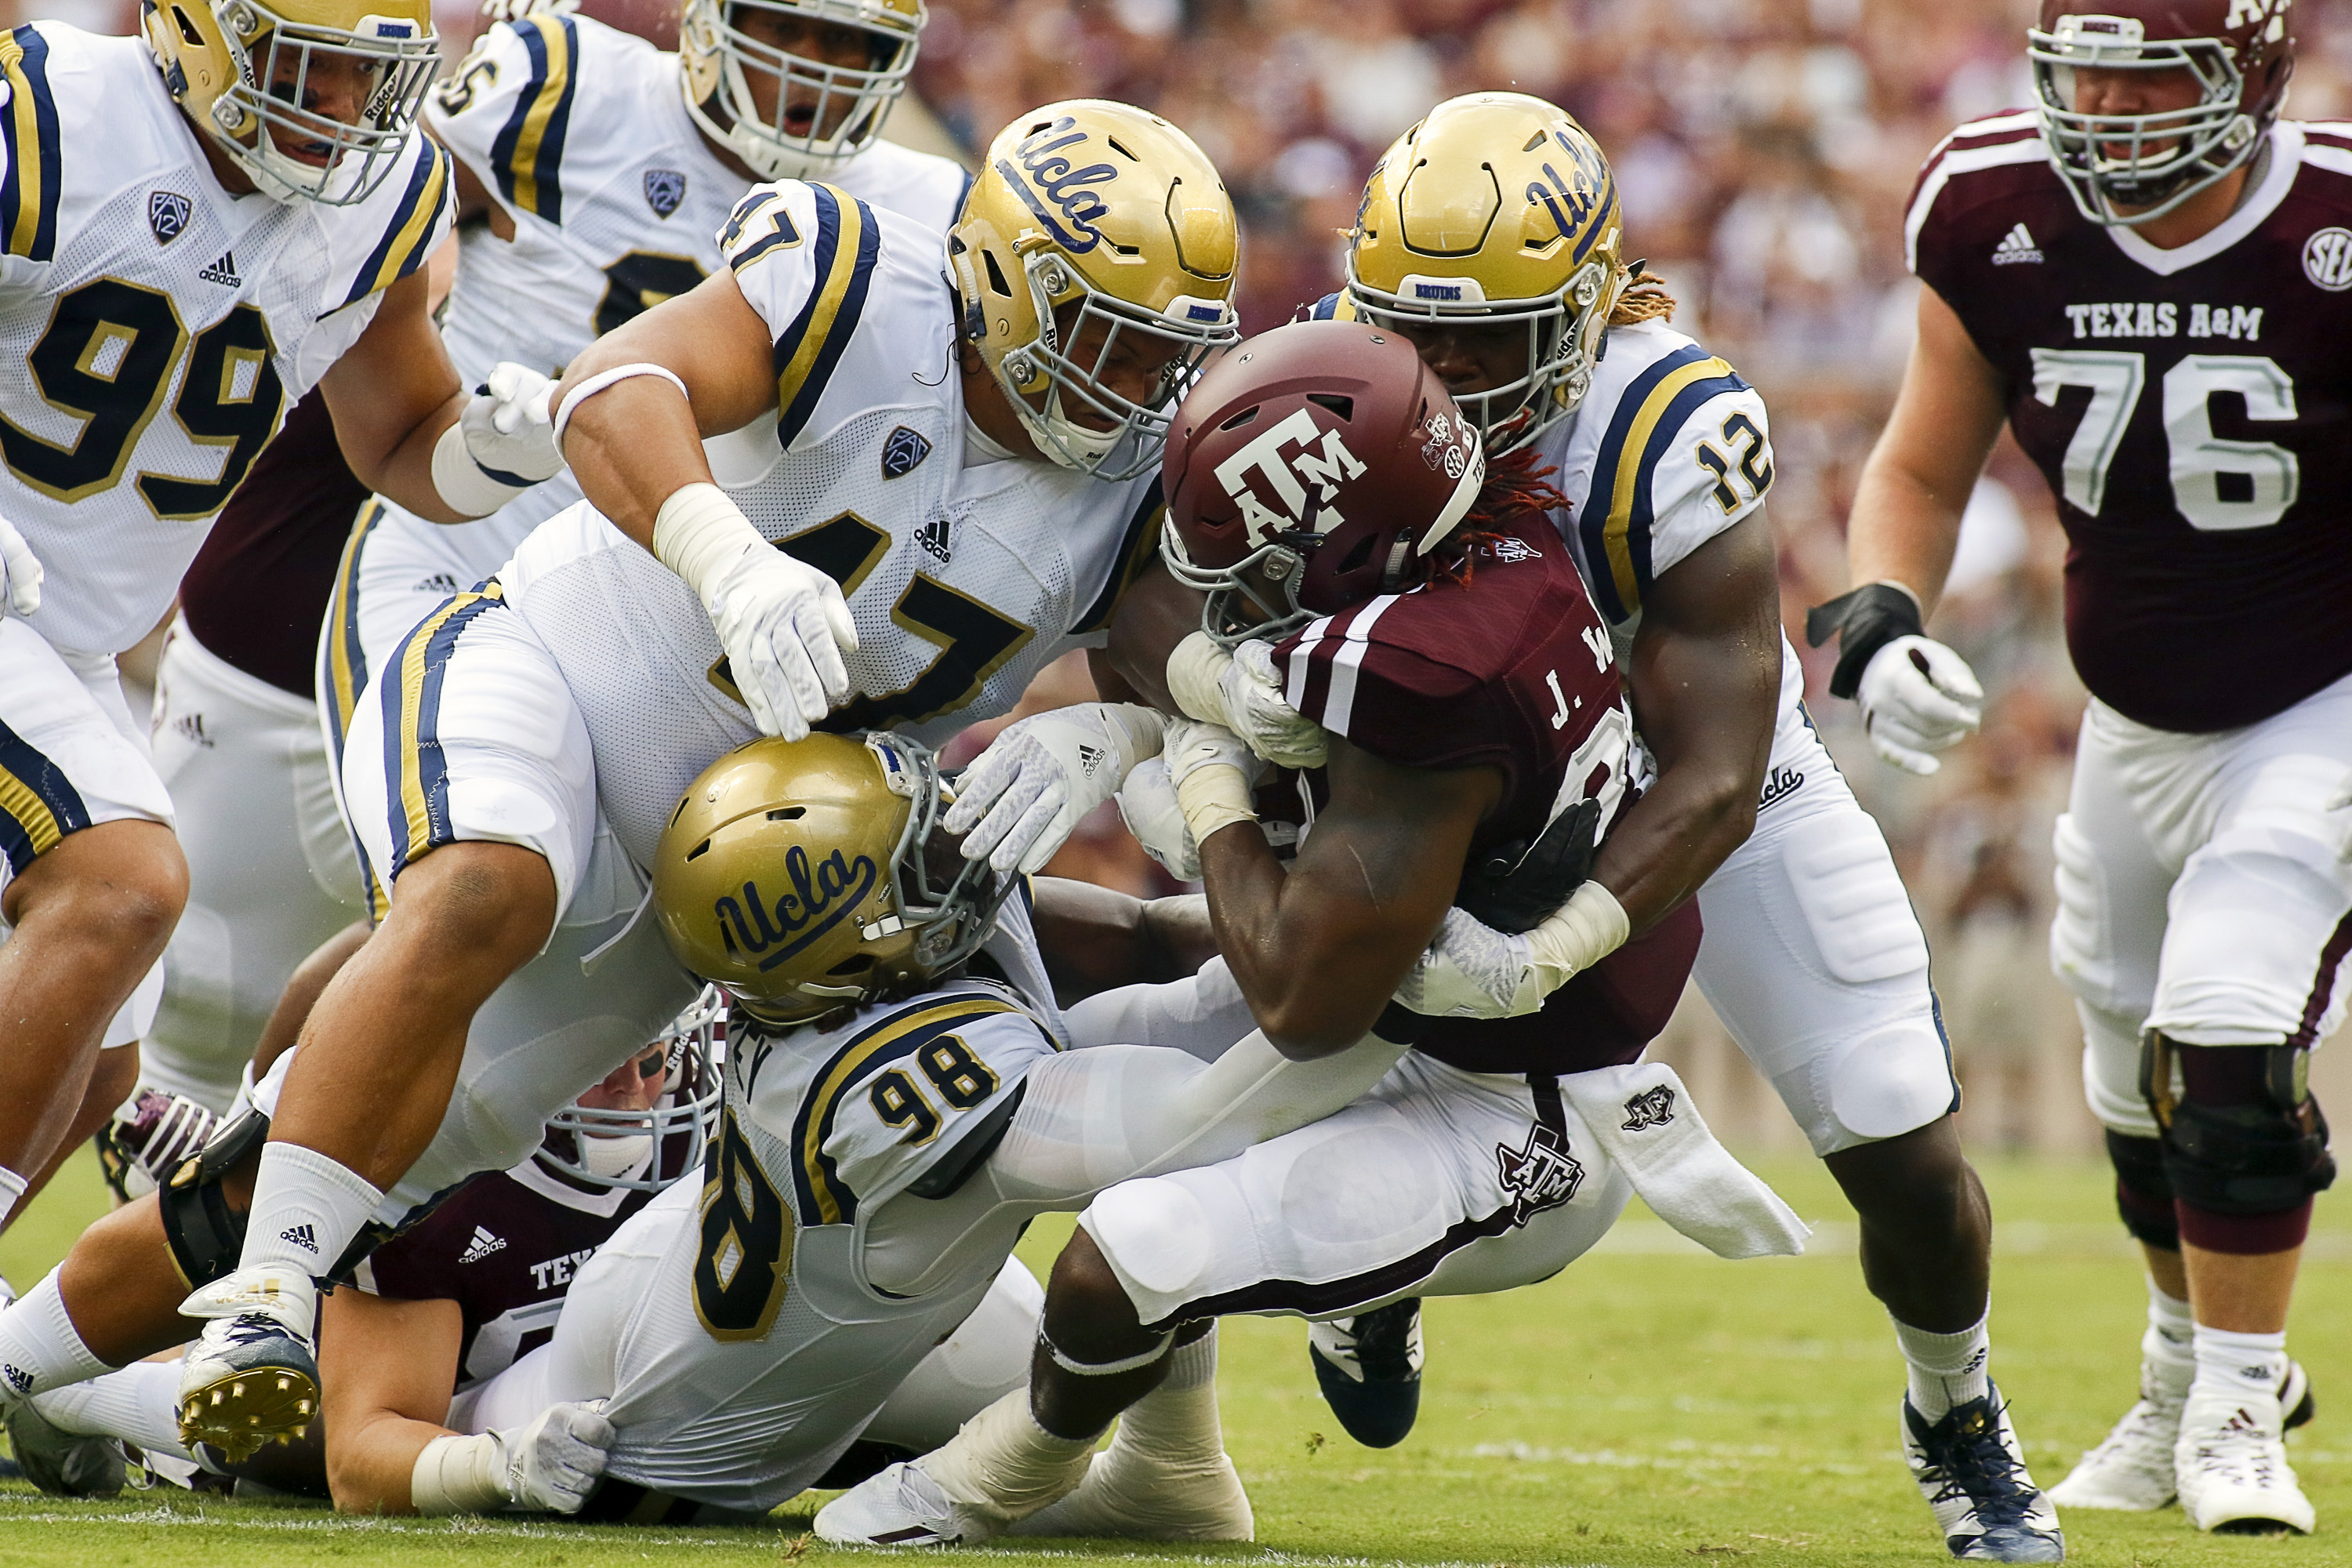 Takkarist McKinley was injured early in the game at Texas A&M.